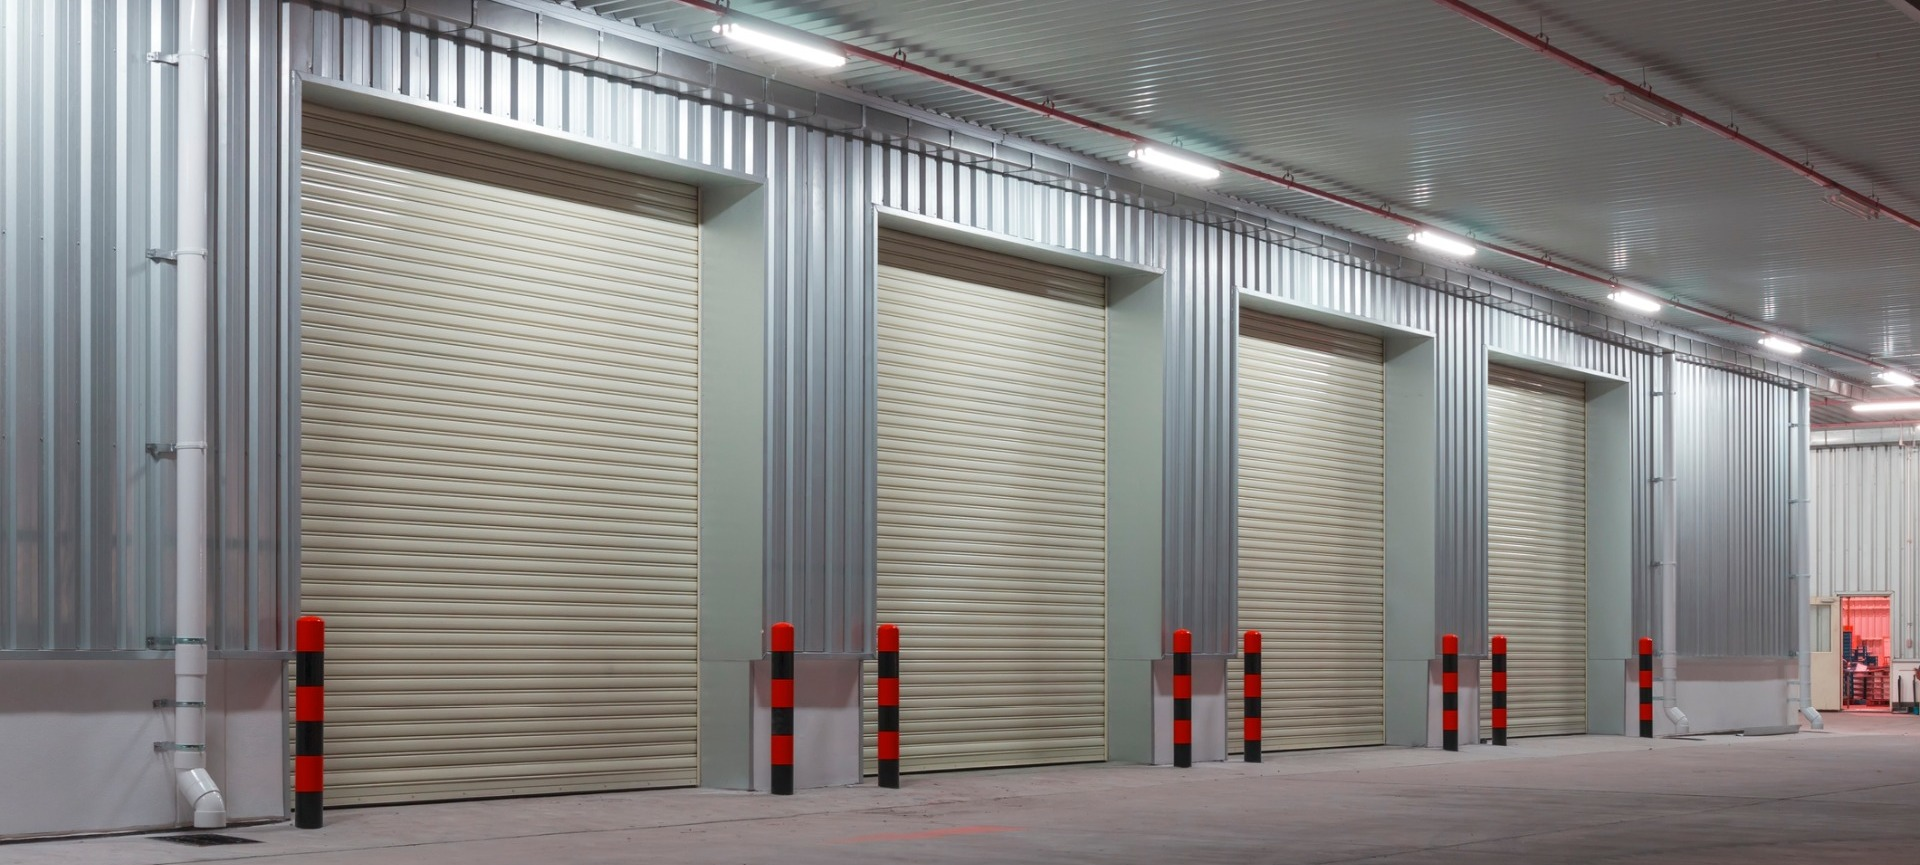 Warehouse with nightlights and protective pillars outside four shutter doors to keep each vehicle separate for each department, delivery to and from warehouse